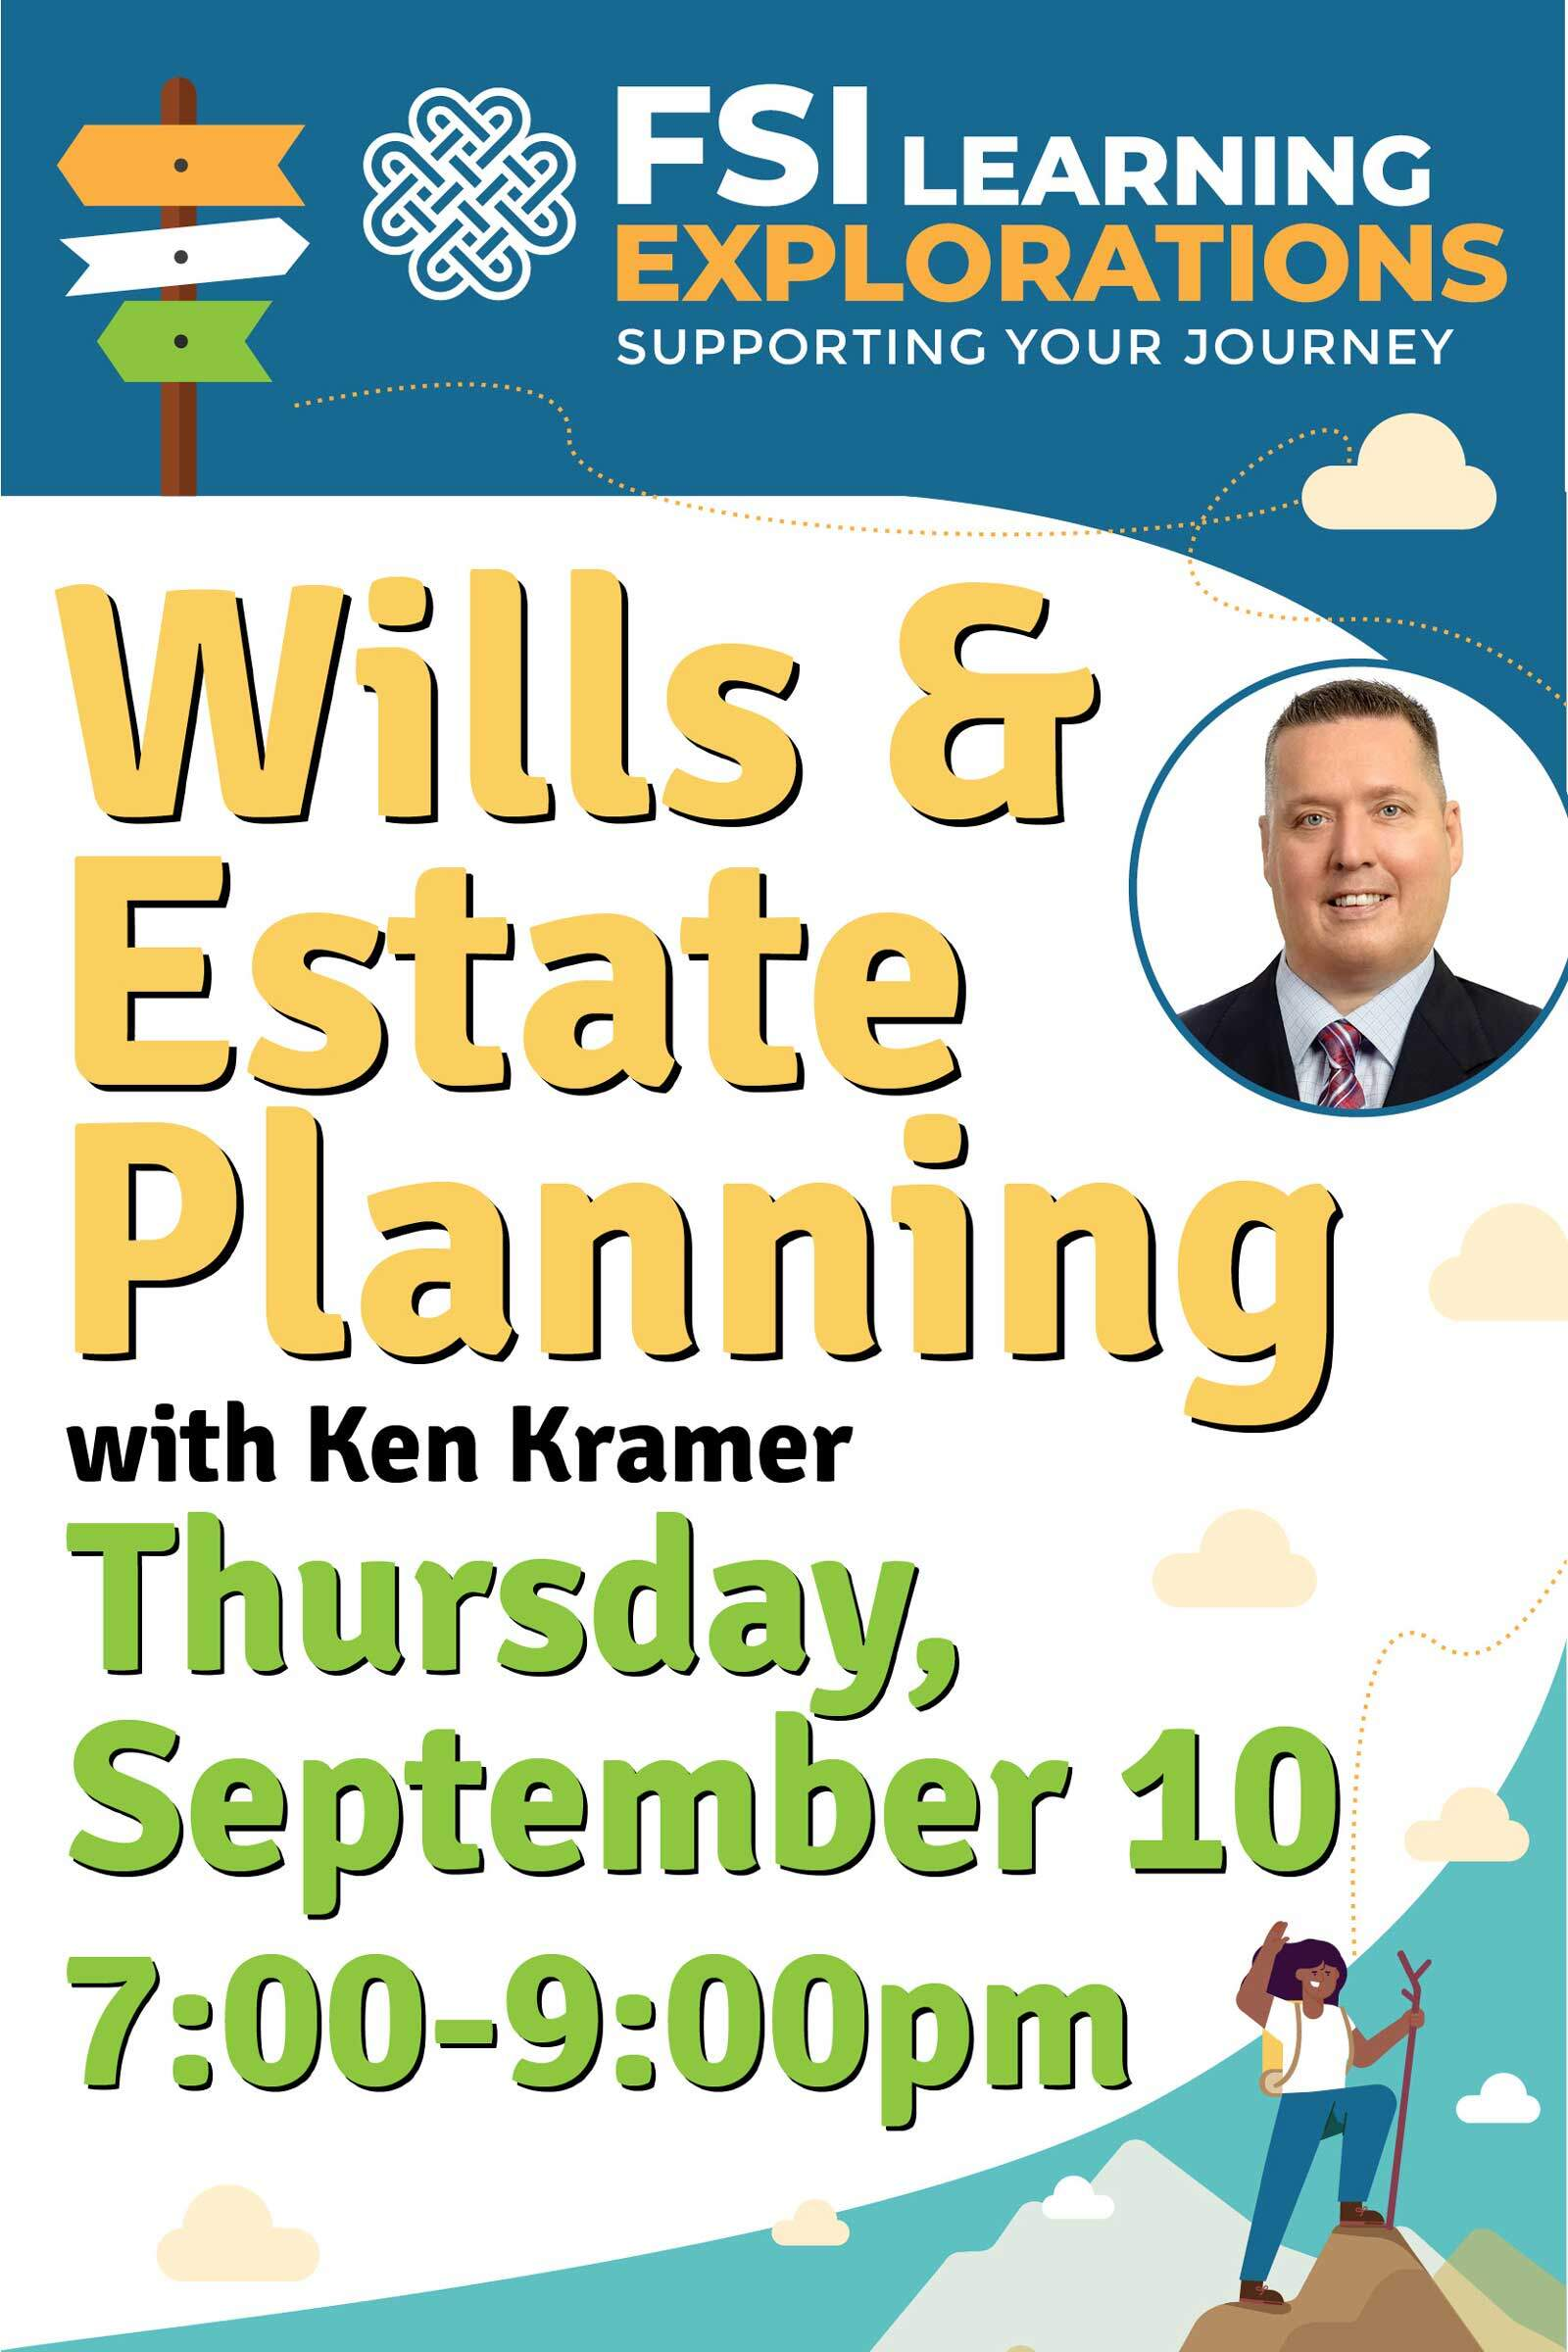 FSI Learning Explorations -Wills and Estate Planning